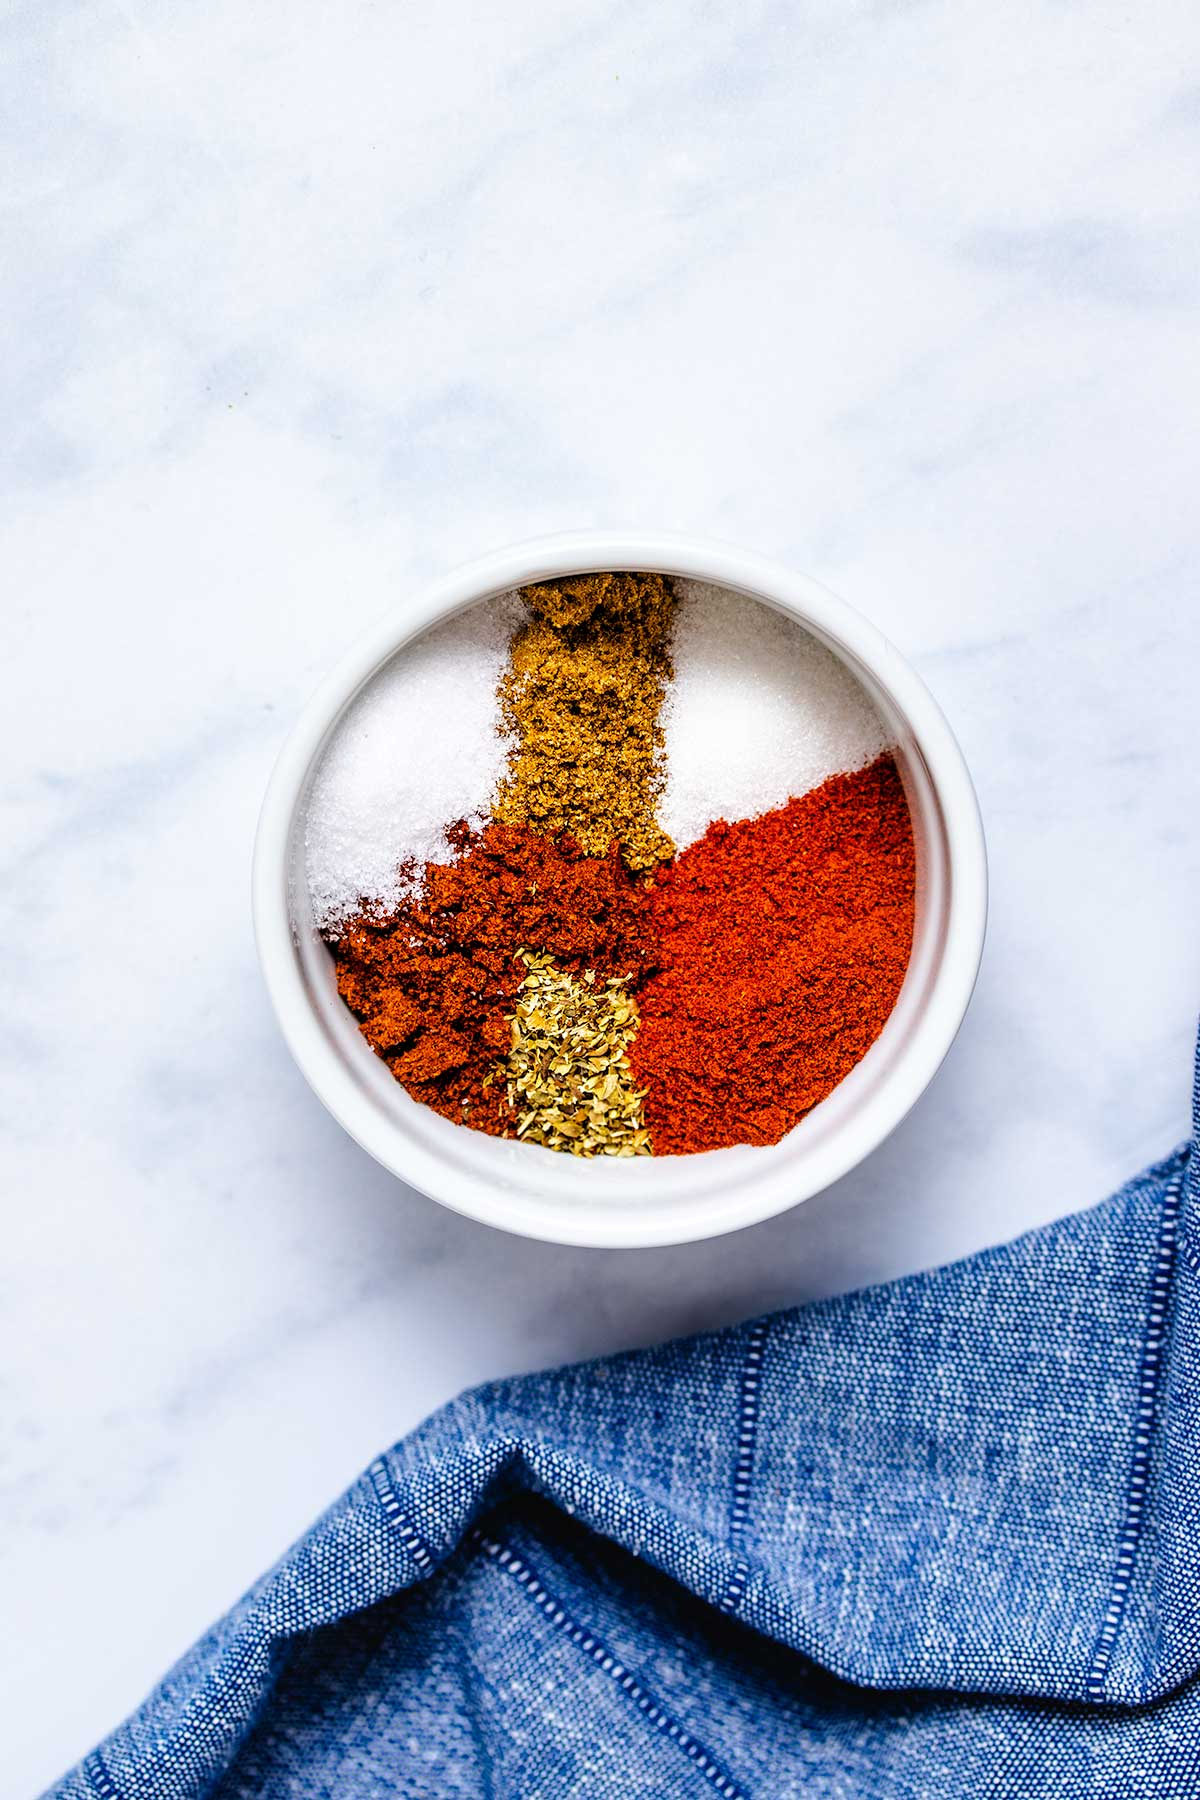 Chili powder, smoked paprika, cumin, oregano, salt and sugar in a small white bowl next to a denim linen